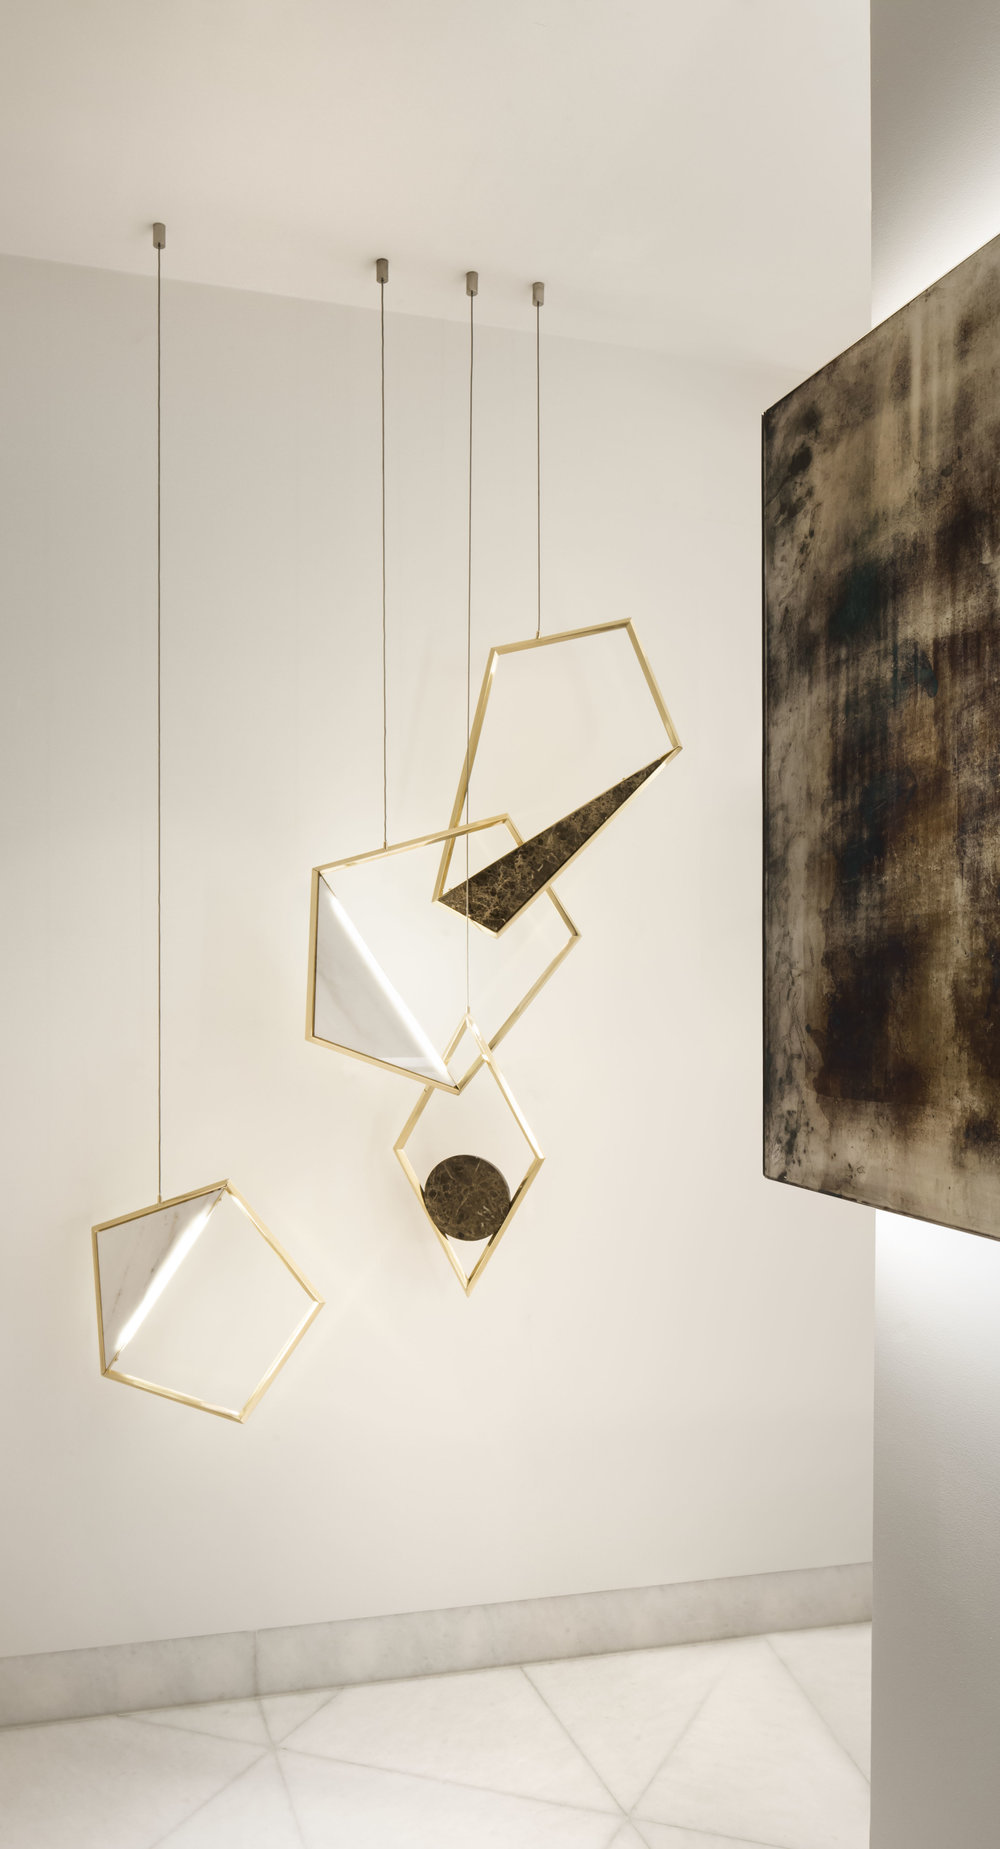 tangle-light_lighting-design_coordination-berlin_06.jpg